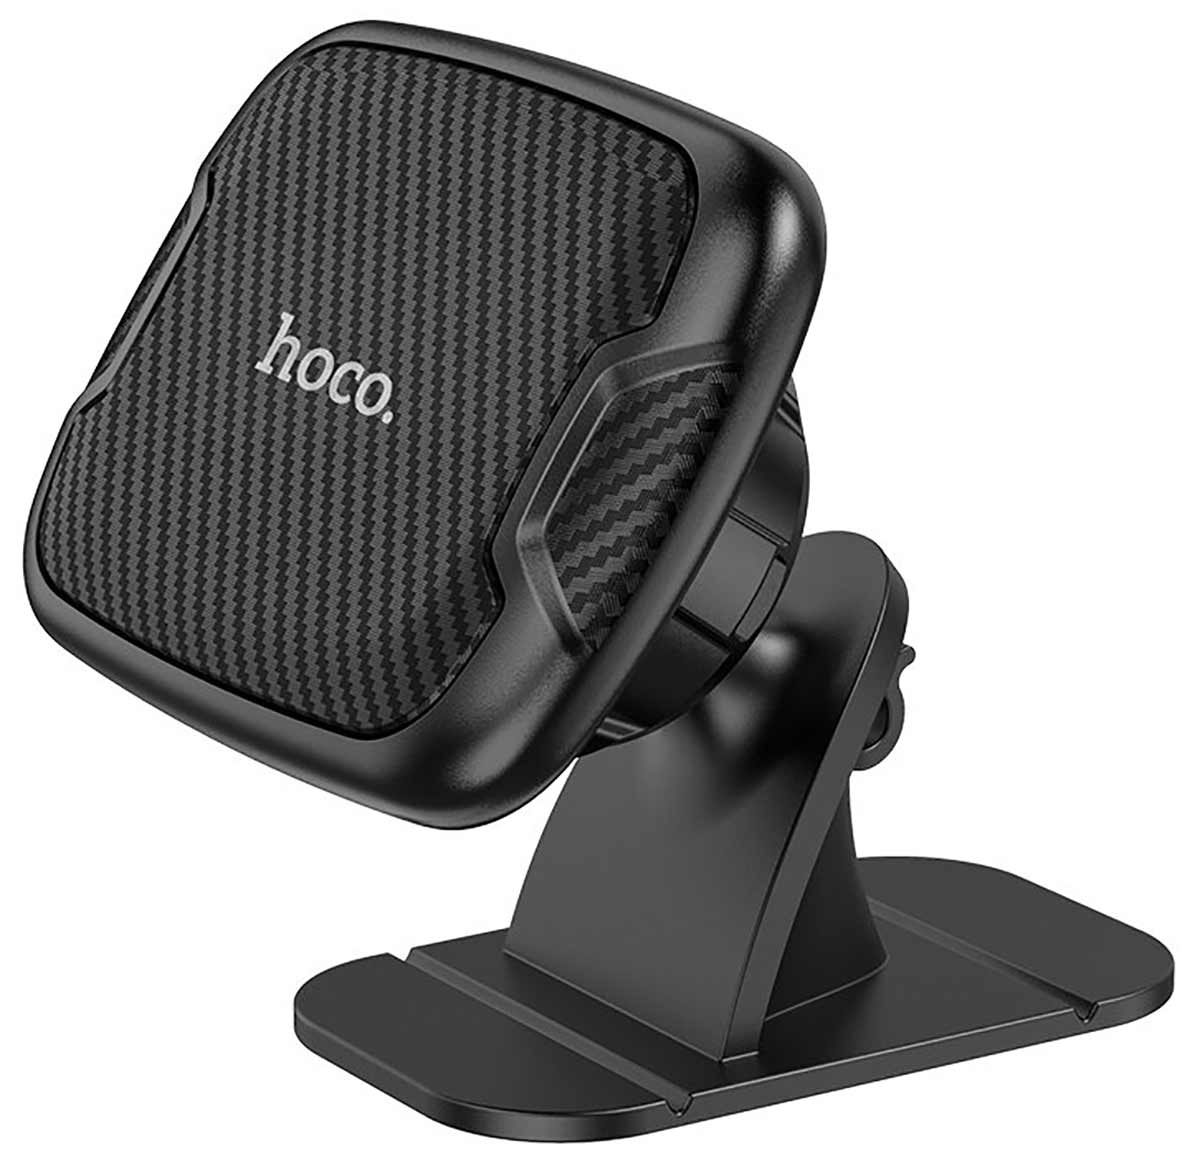 держатель на 3М скотче Hoco CA66 Sagittarius series center console magnetic car holder black